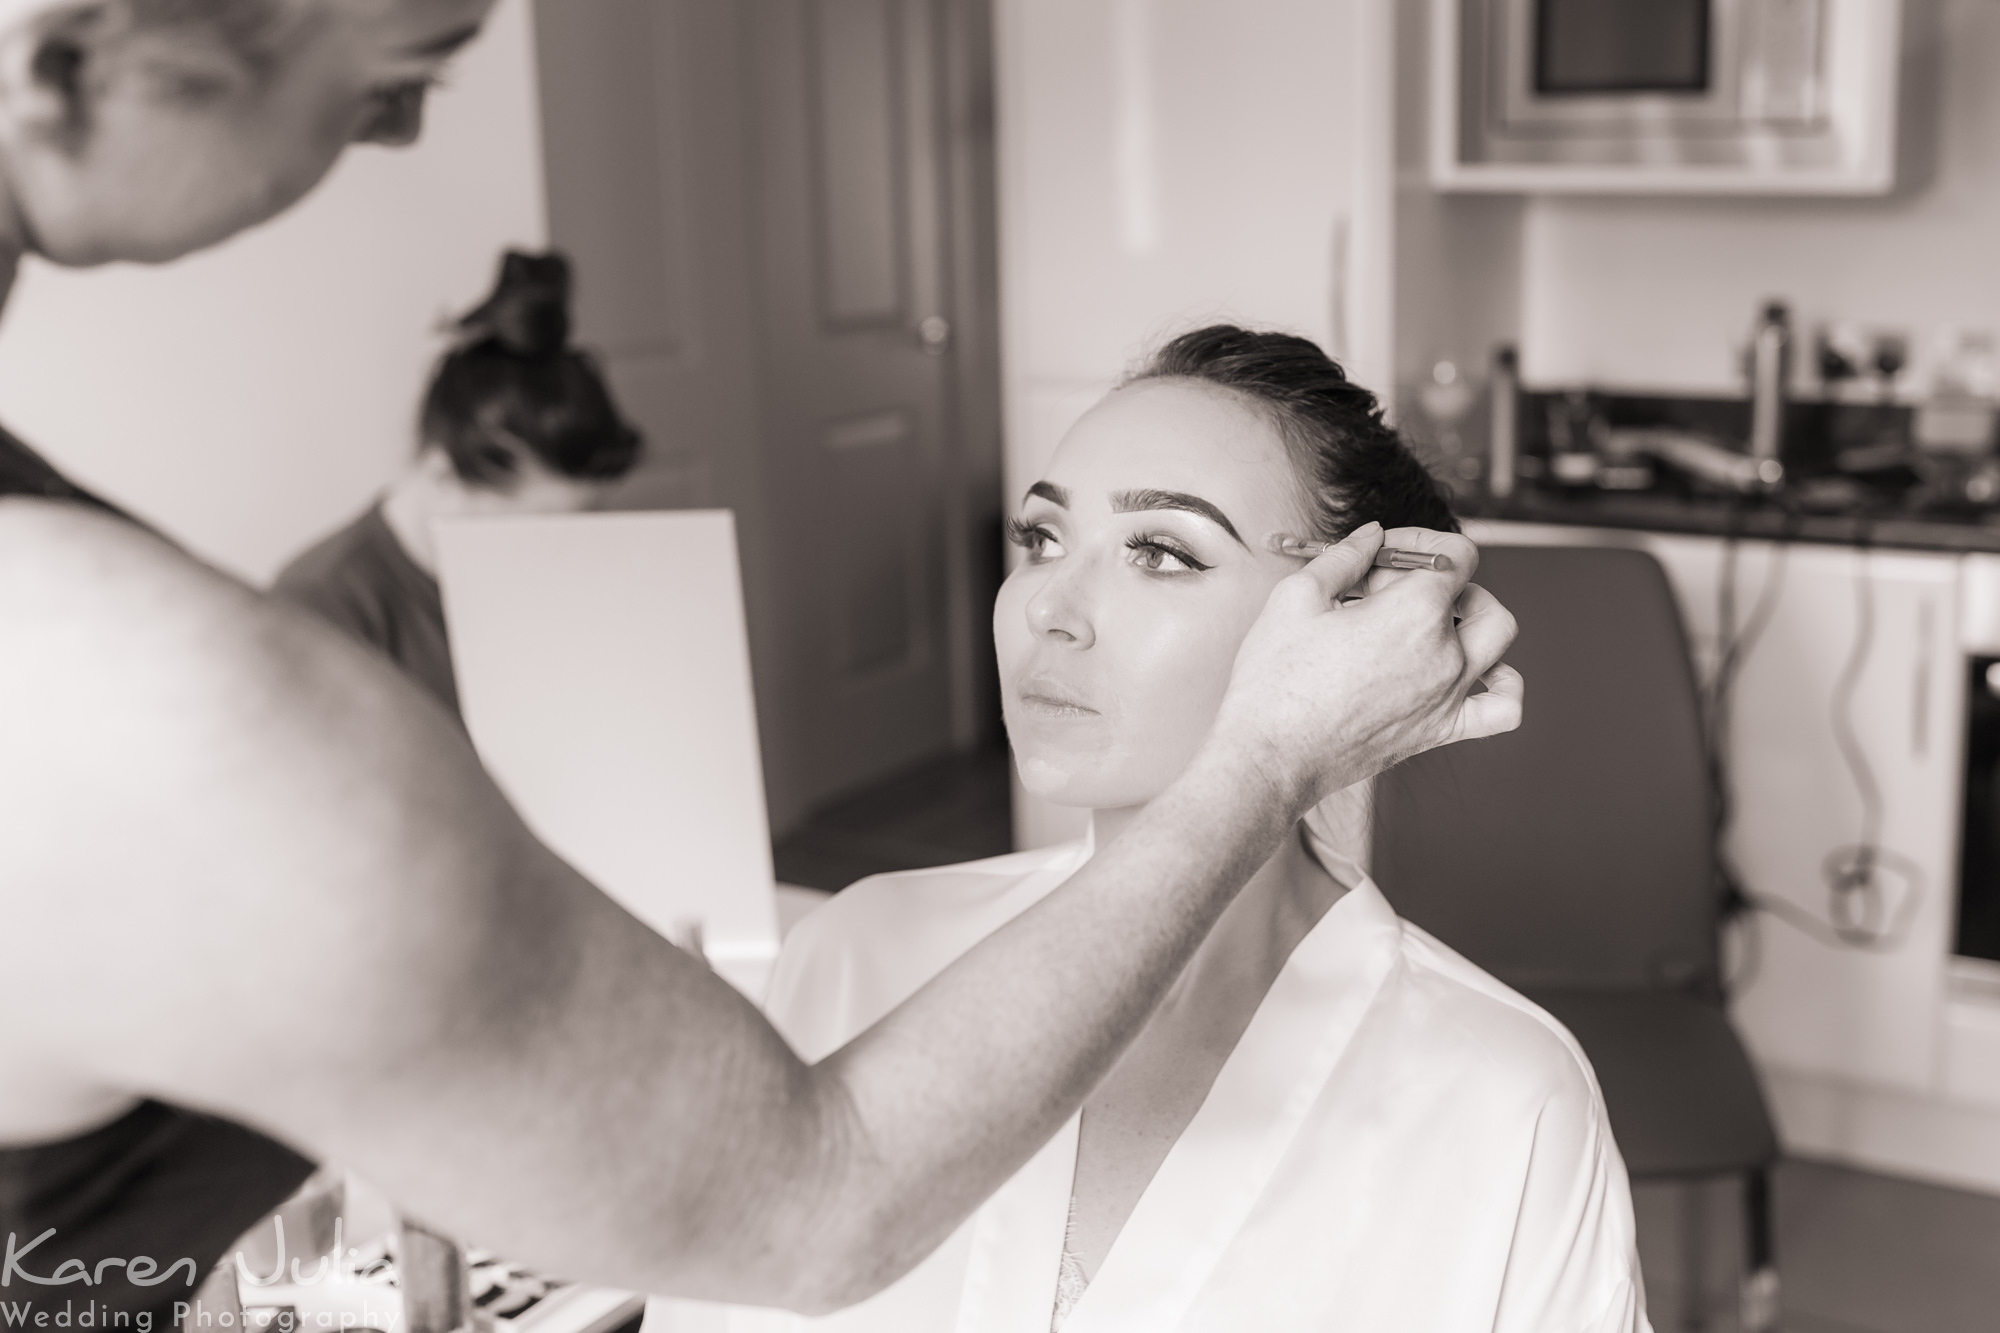 make-up being applied during morning bridal preparations